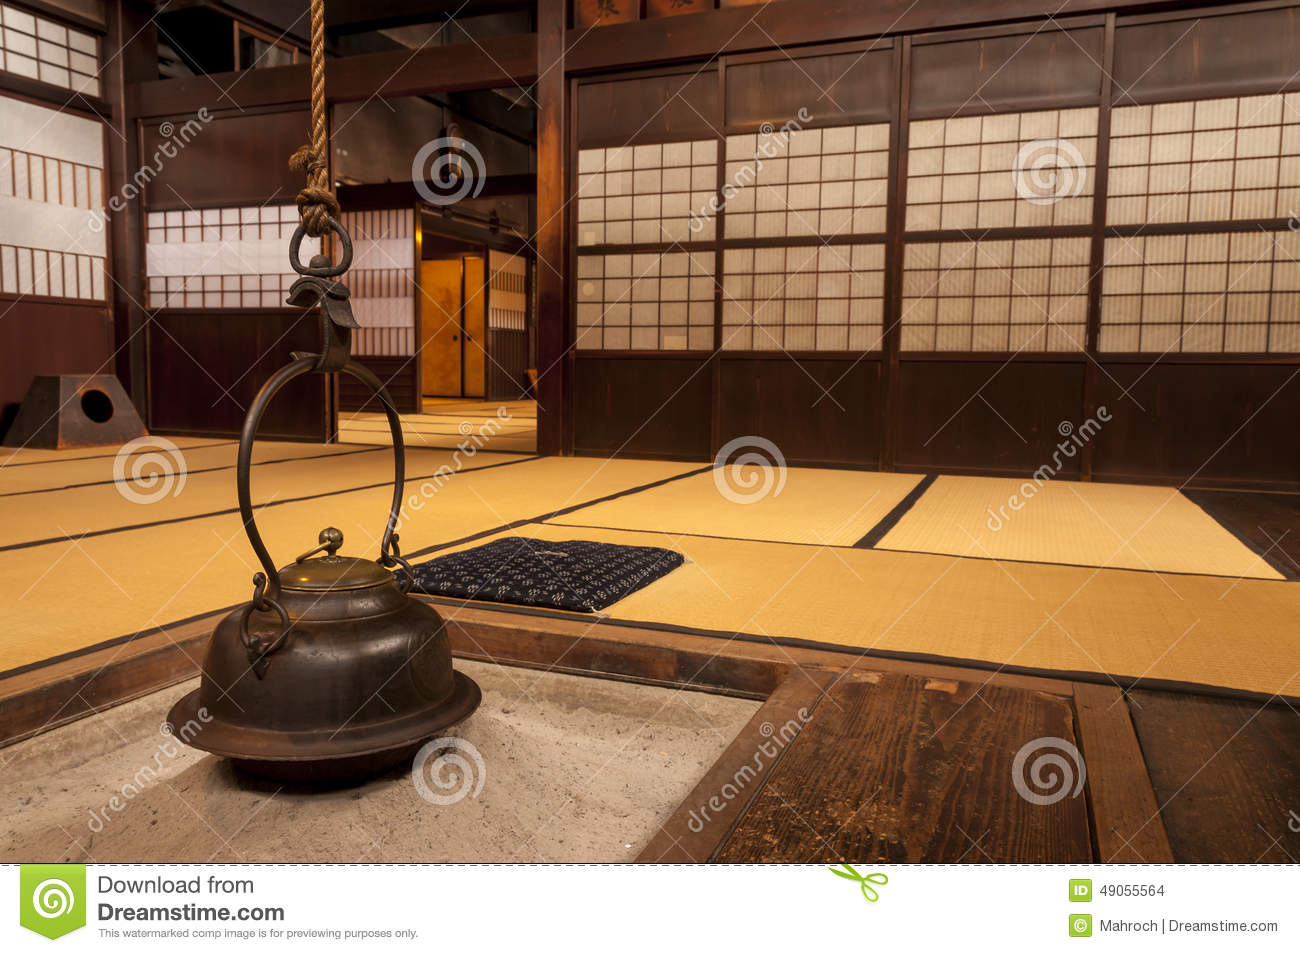 Traditional japanese home interior - Traditional Japanese Home Interior With Hanging Tea Pot